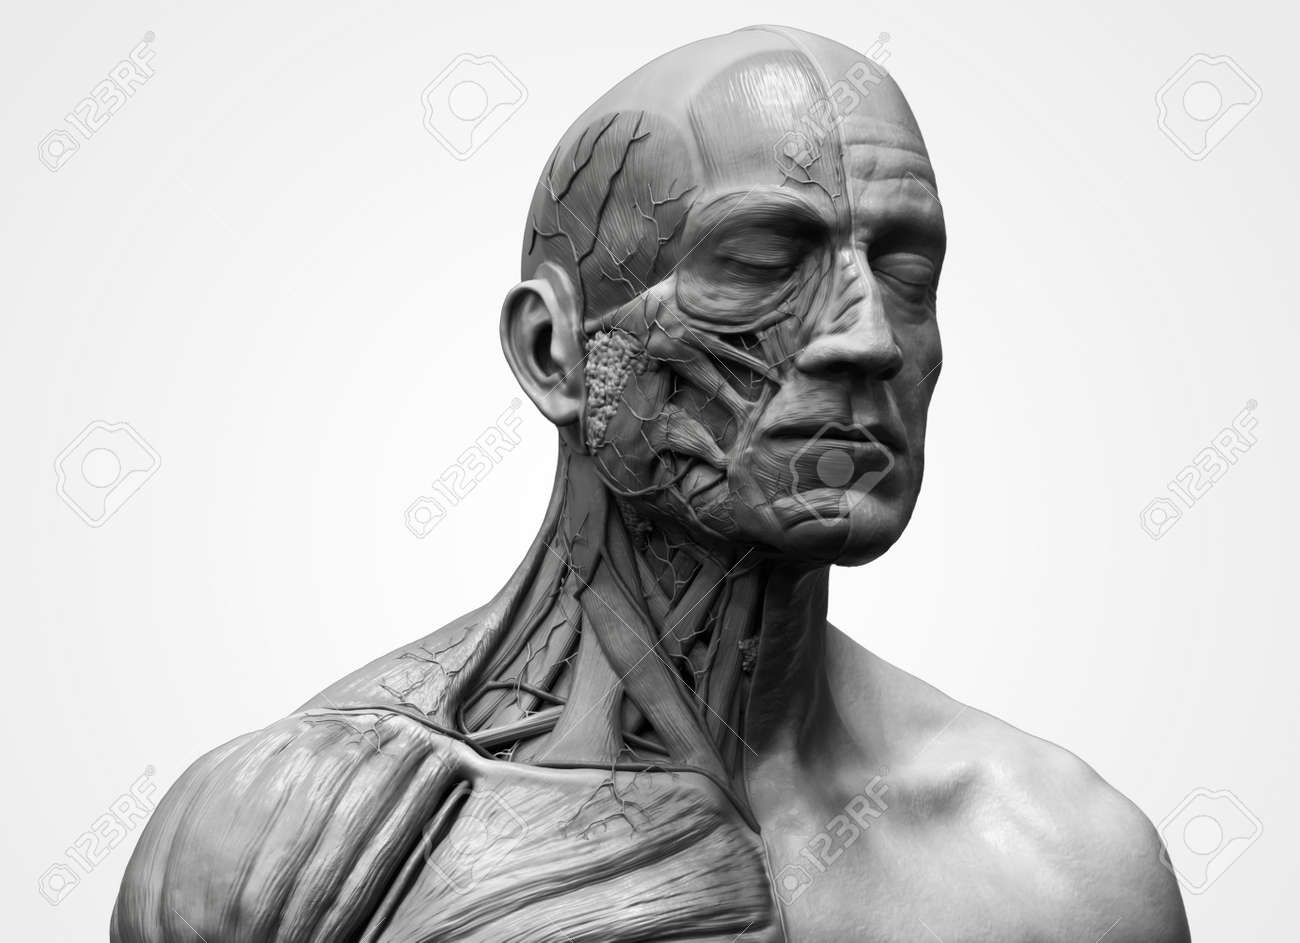 Human Body Anatomy - Muscle Anatomy Of The Face Neck And Chest ...